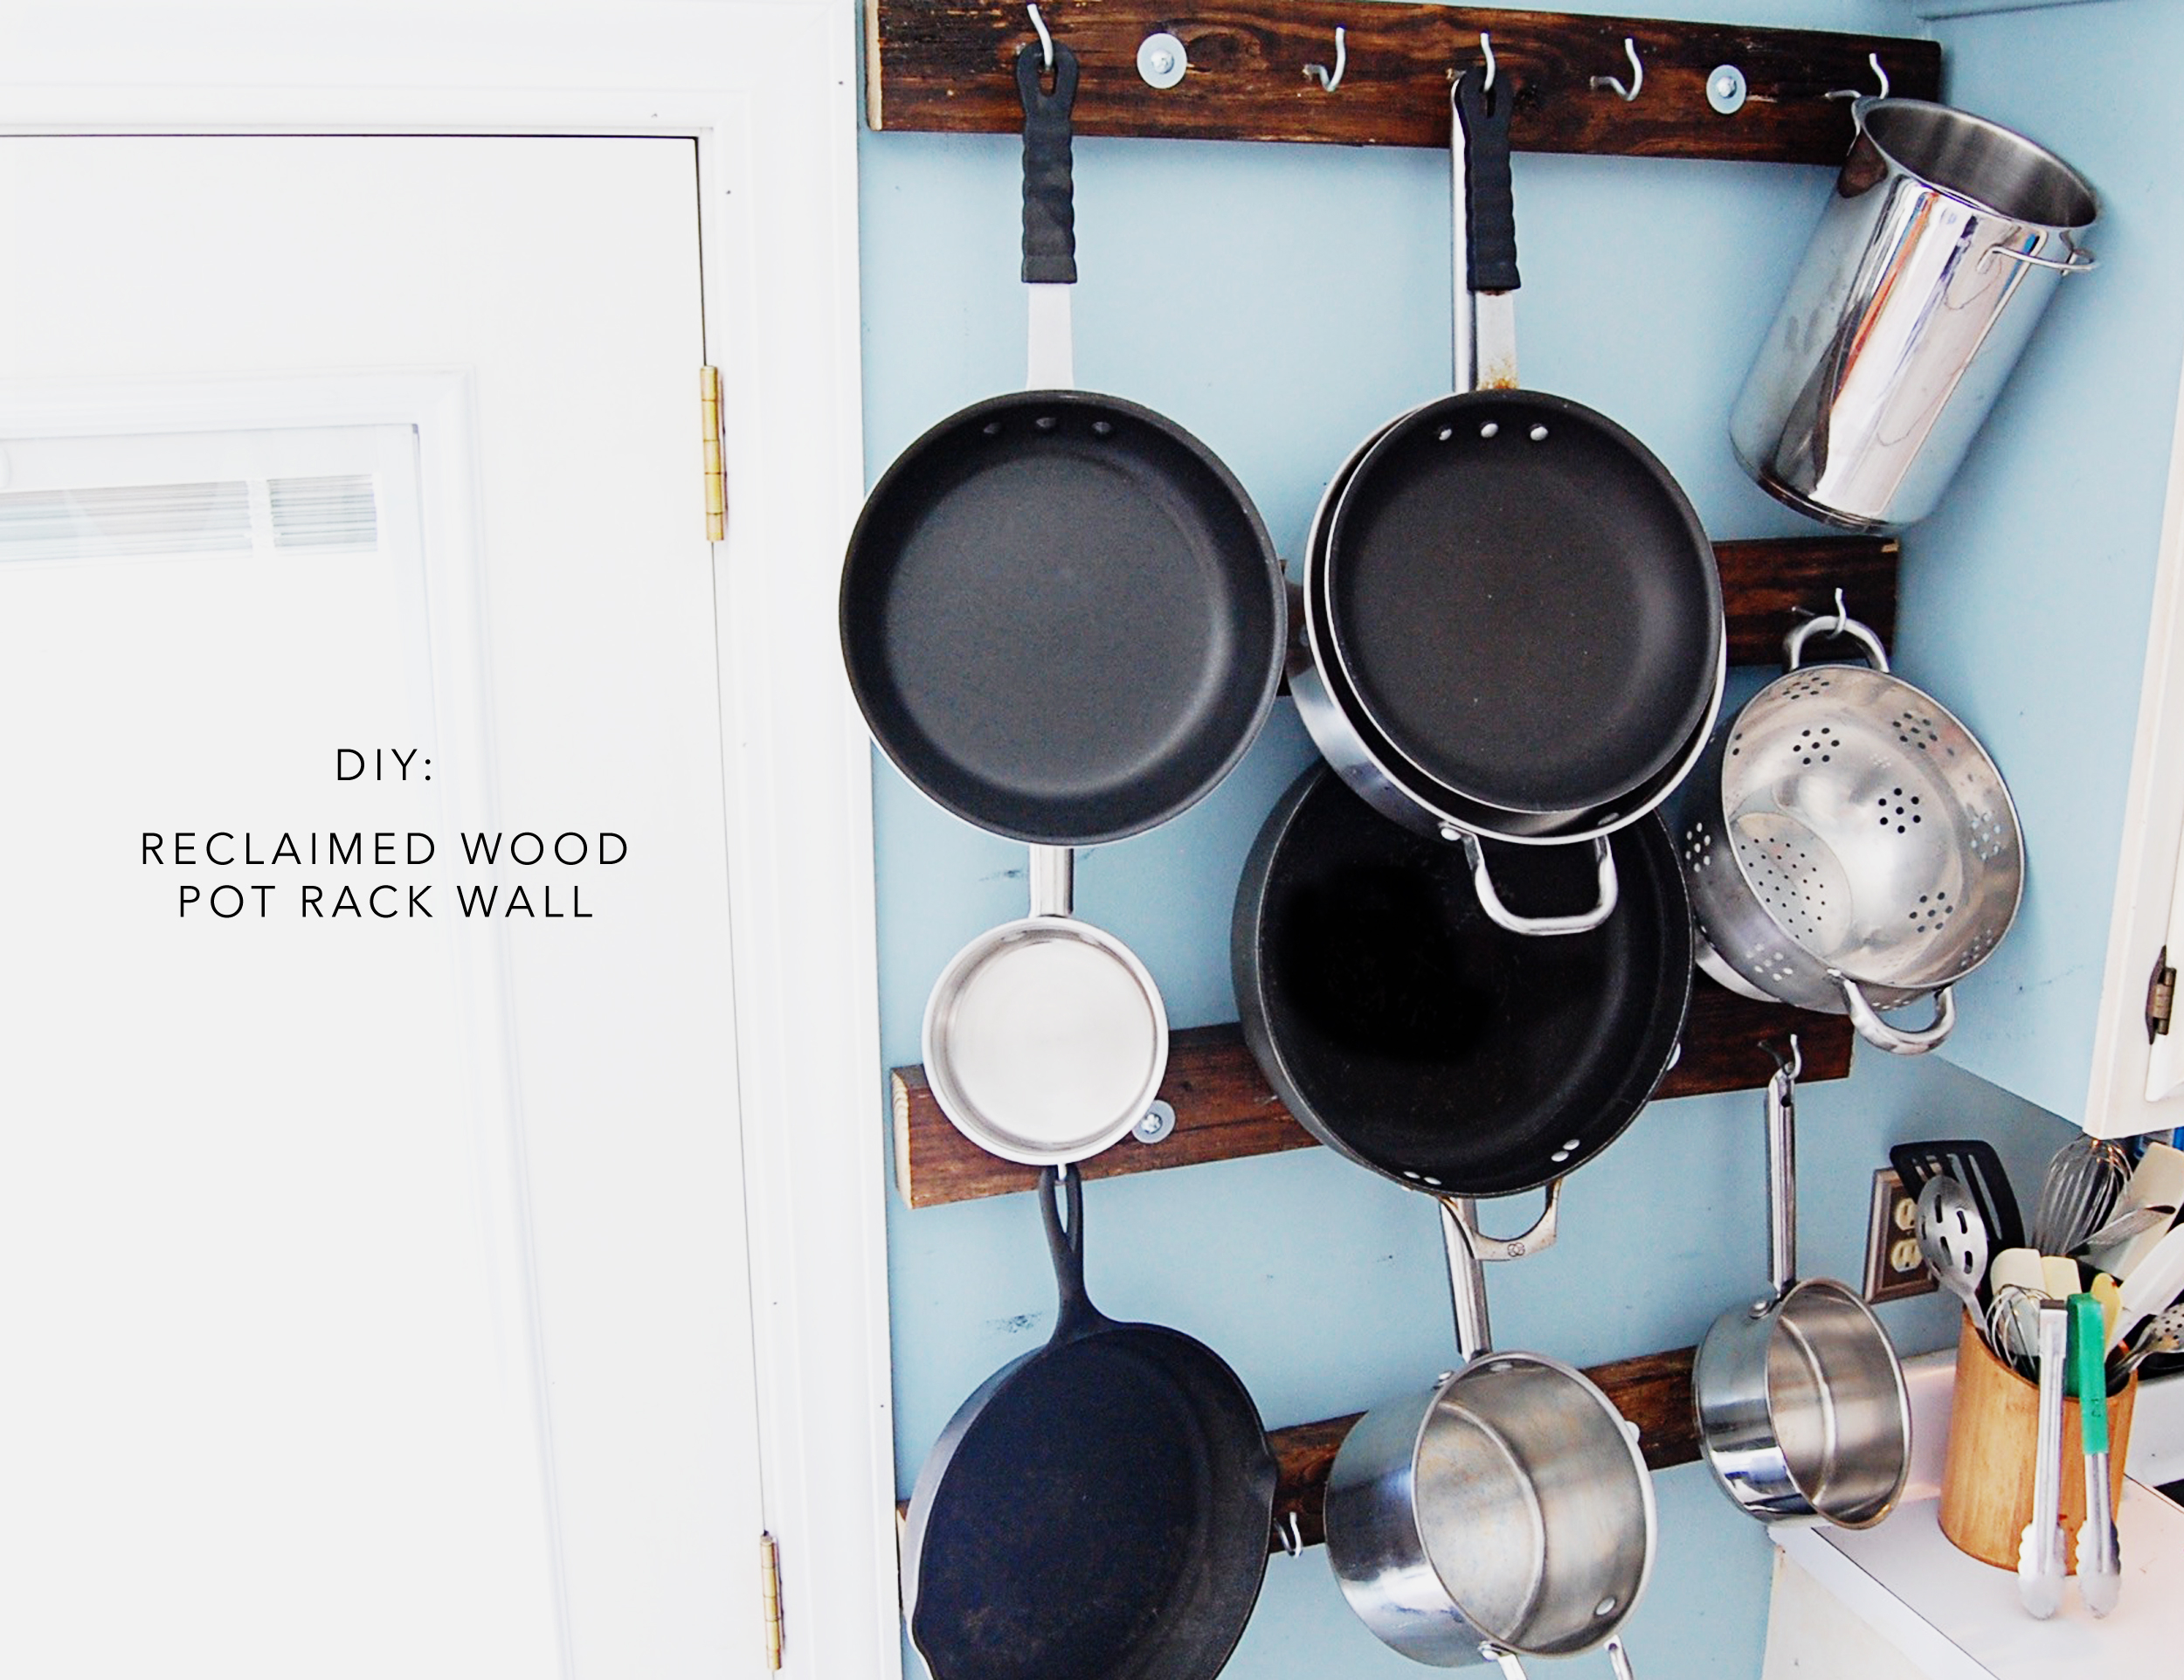 Reclaimed wood pot rack wall curated domain for Reclaimed wood pot rack